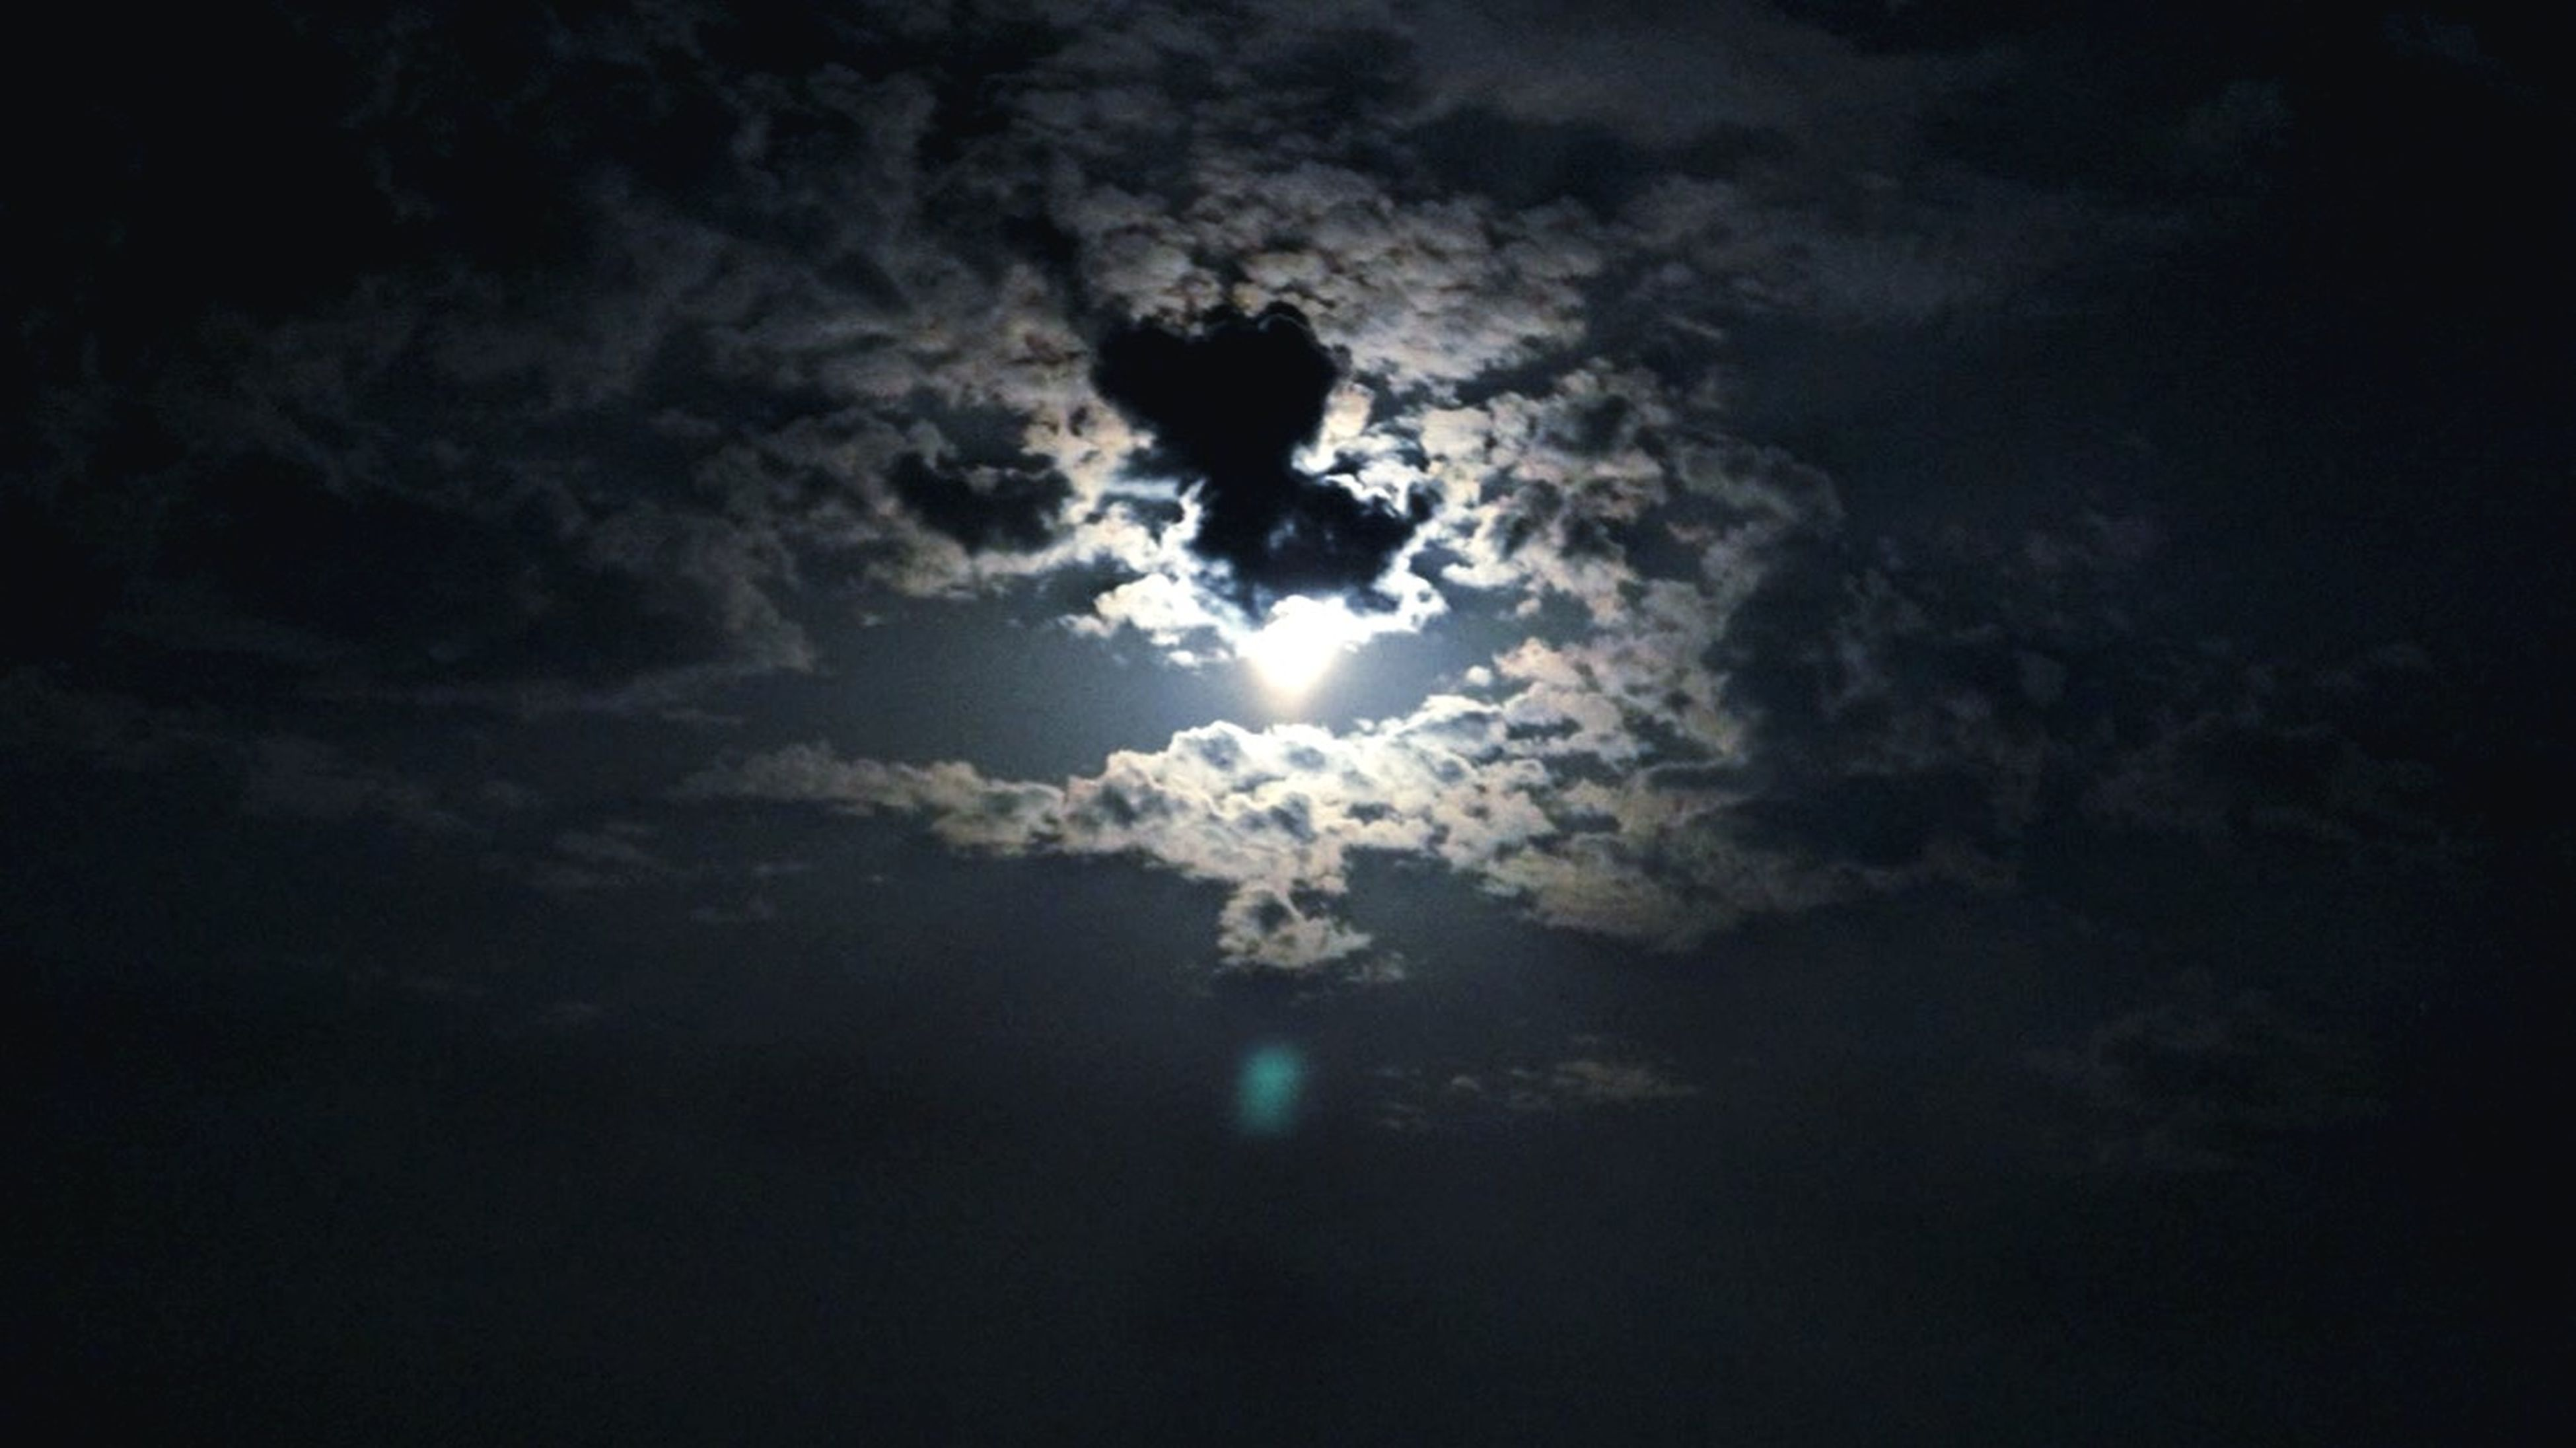 sky, low angle view, beauty in nature, tranquility, scenics, nature, tranquil scene, cloud - sky, night, silhouette, sky only, idyllic, dark, moon, cloudy, majestic, weather, outdoors, cloud, no people